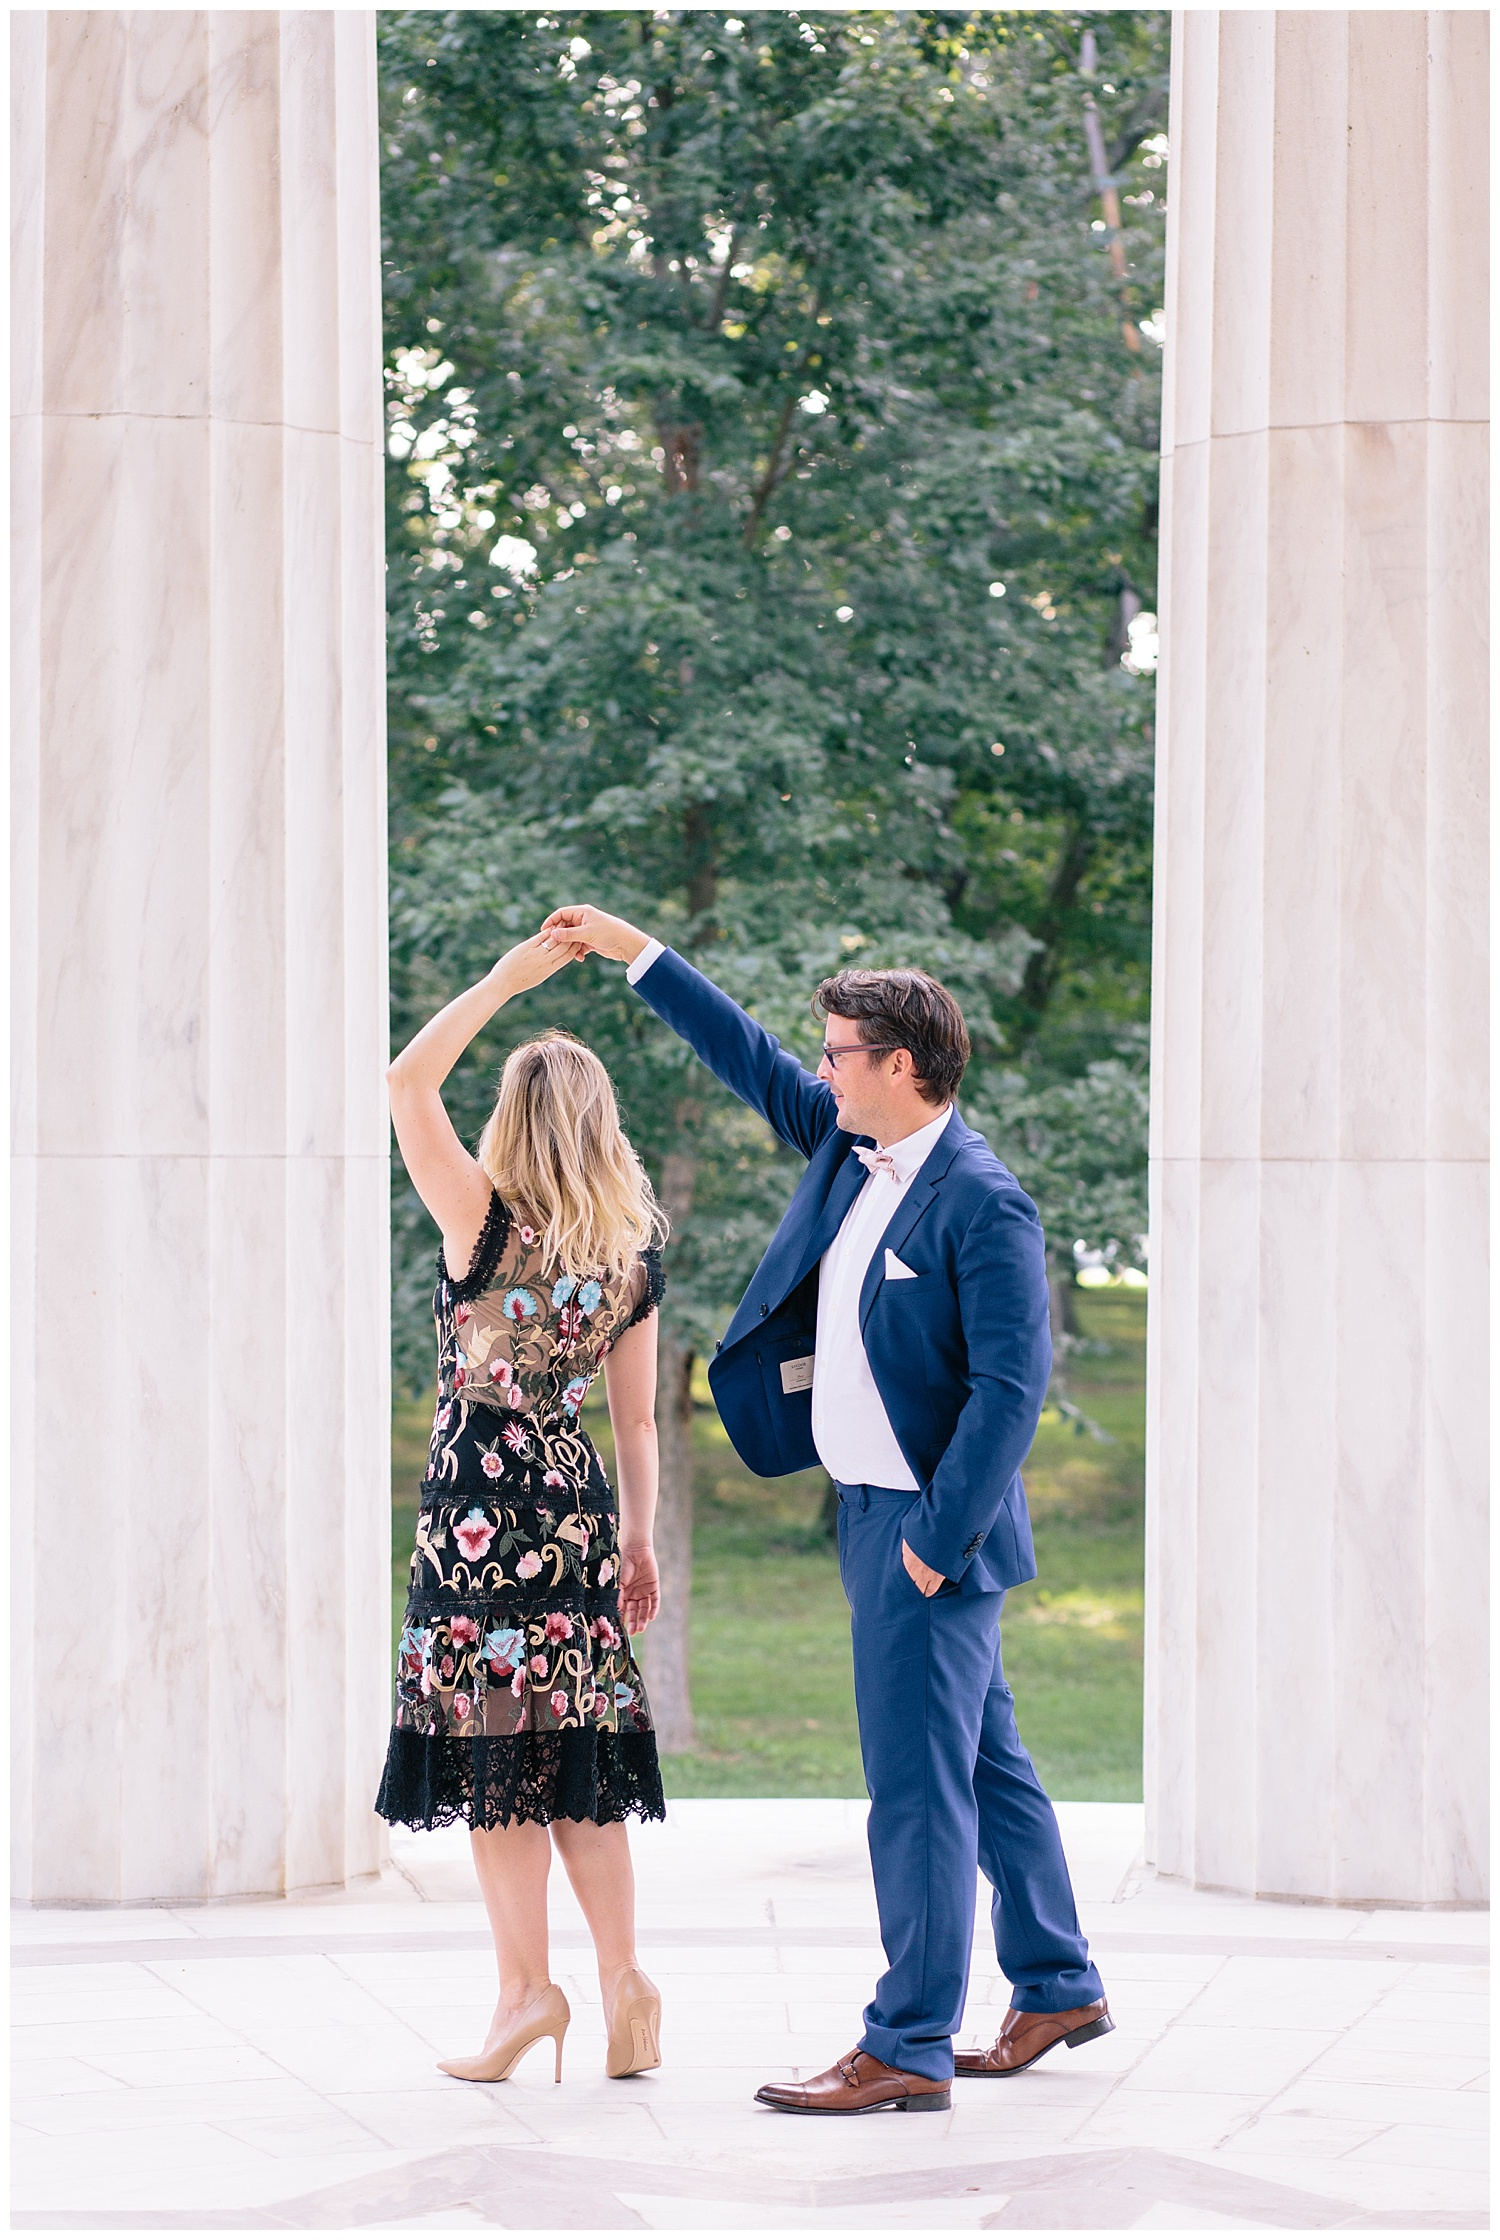 emily-belson-photography-washington-dc-engagement-emily-john-14.jpg